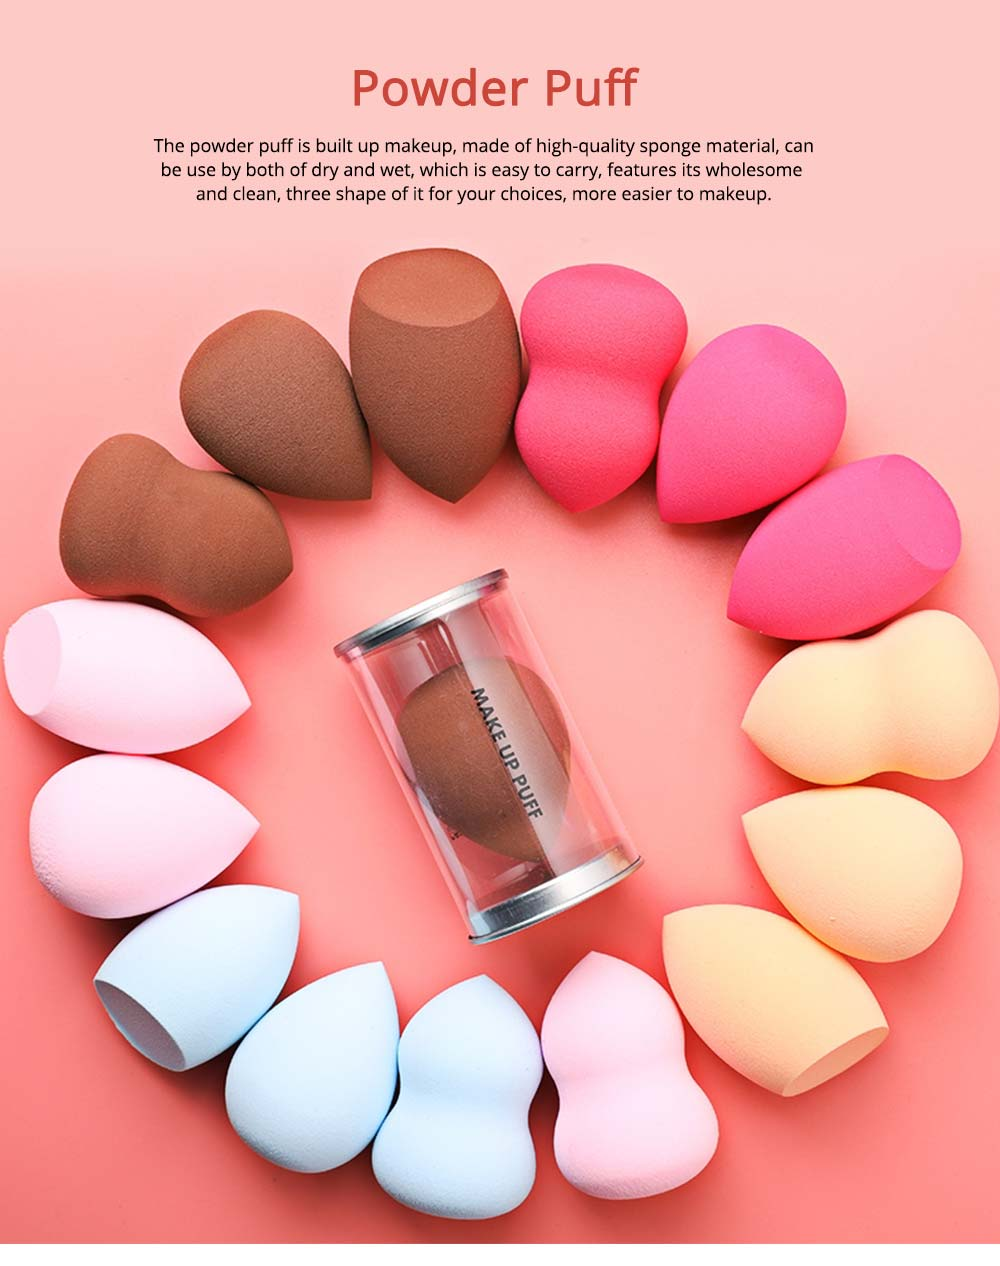 Sponge Powder Puff for Makeup, Dry Wet Beauty Blender with Gourd Powder Puff Drop Shape 0